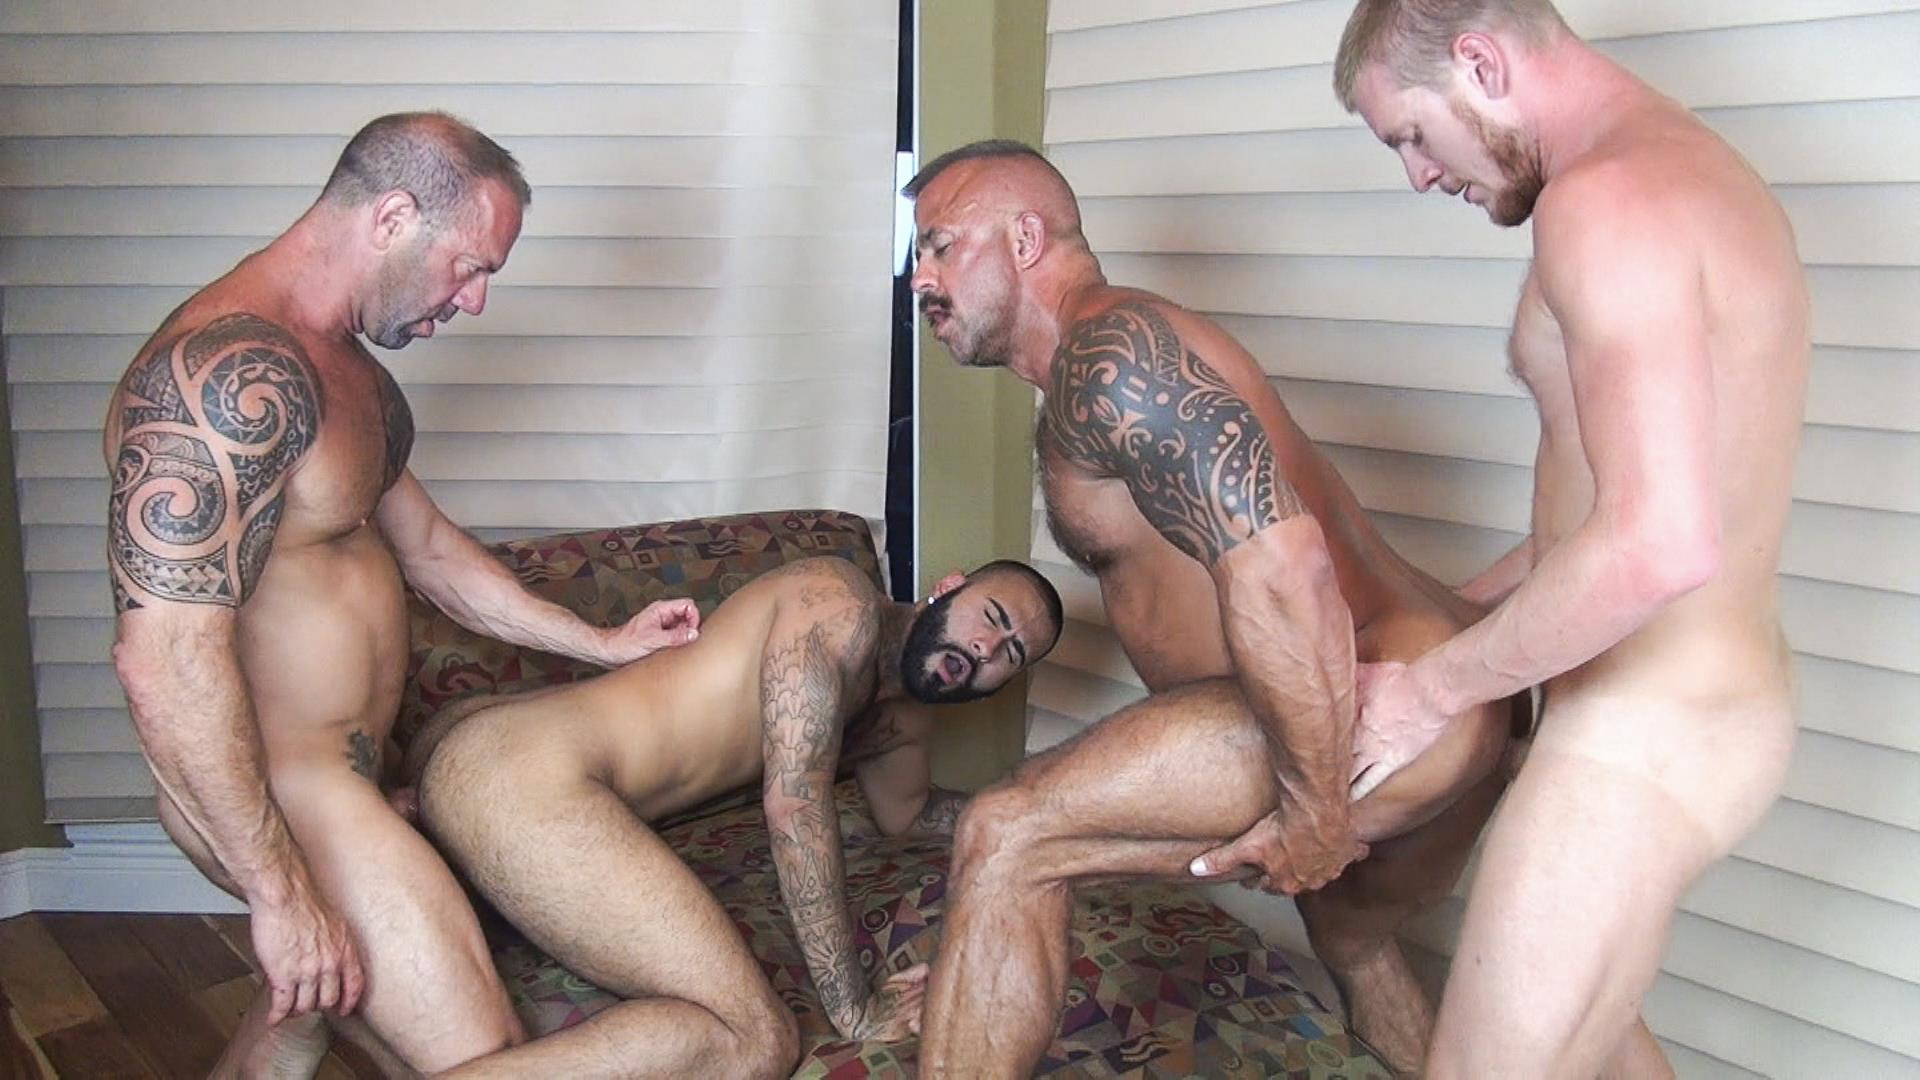 Raw Fuck Club Vic Rocco and Rikk York and Billy Warren and Job Galt Bareback Daddy Amateur Gay Porn 09